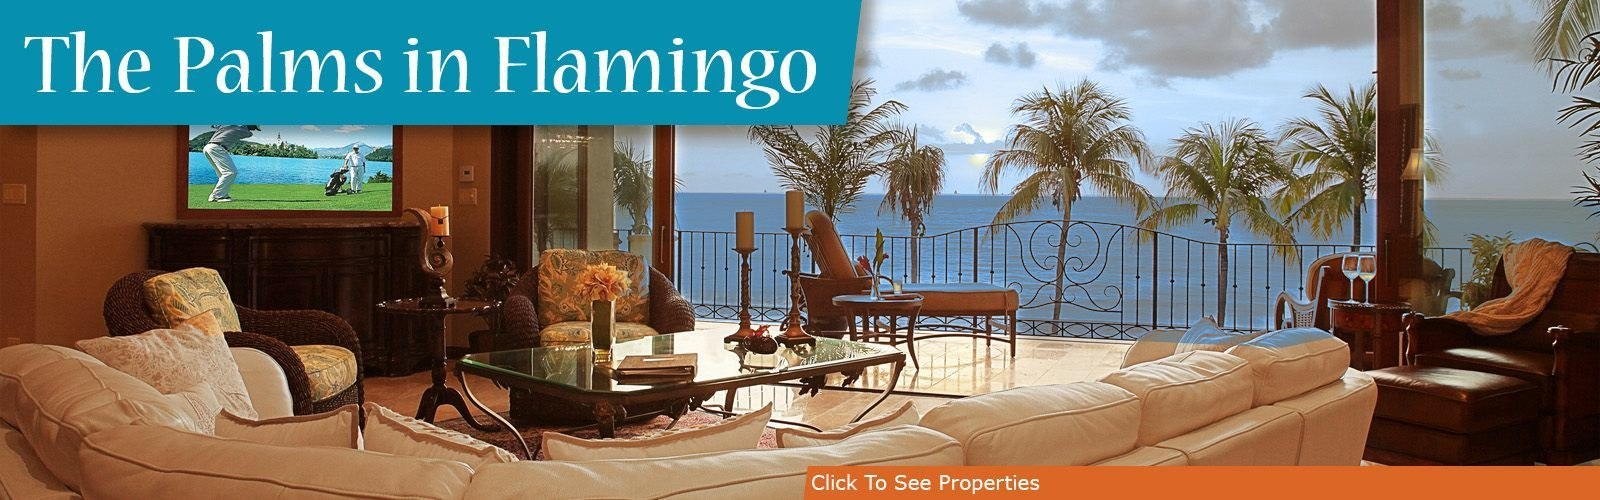 The Palms in Flamingo, Guancaste, Costa Rica Overseas Pacific Realty